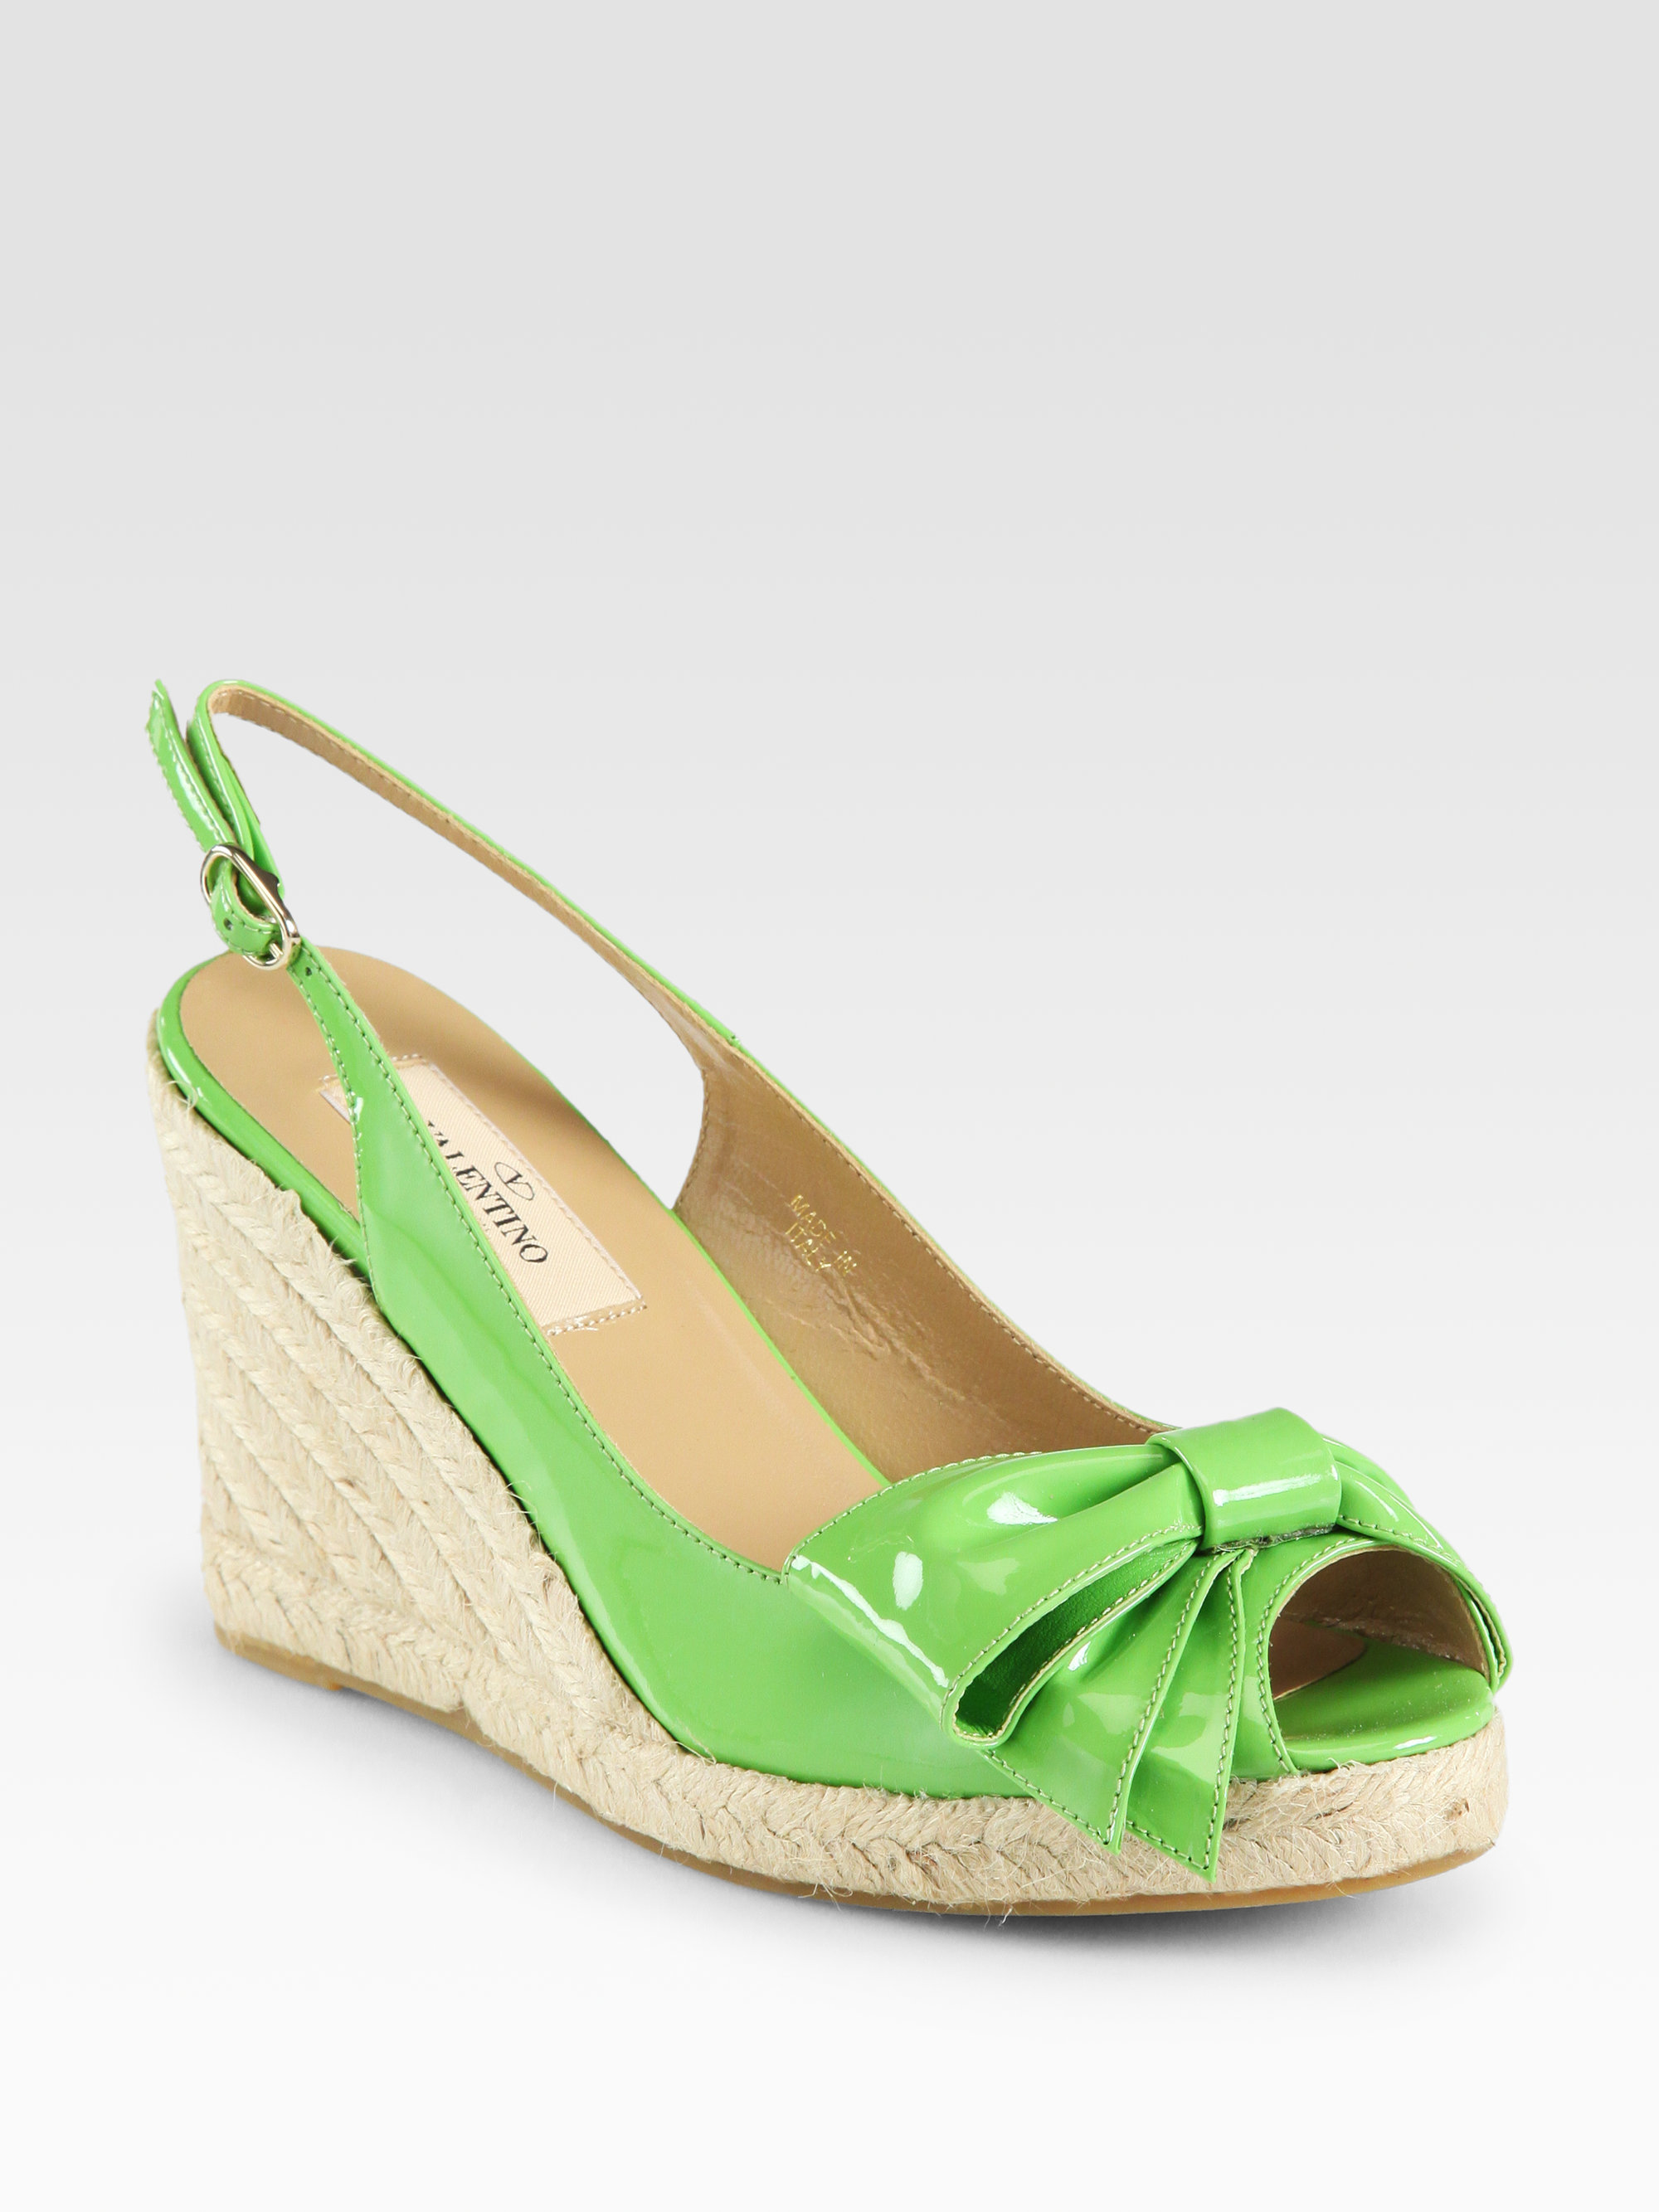 Valentino Mena Patent Leather Espadrille Wedge Sandals In